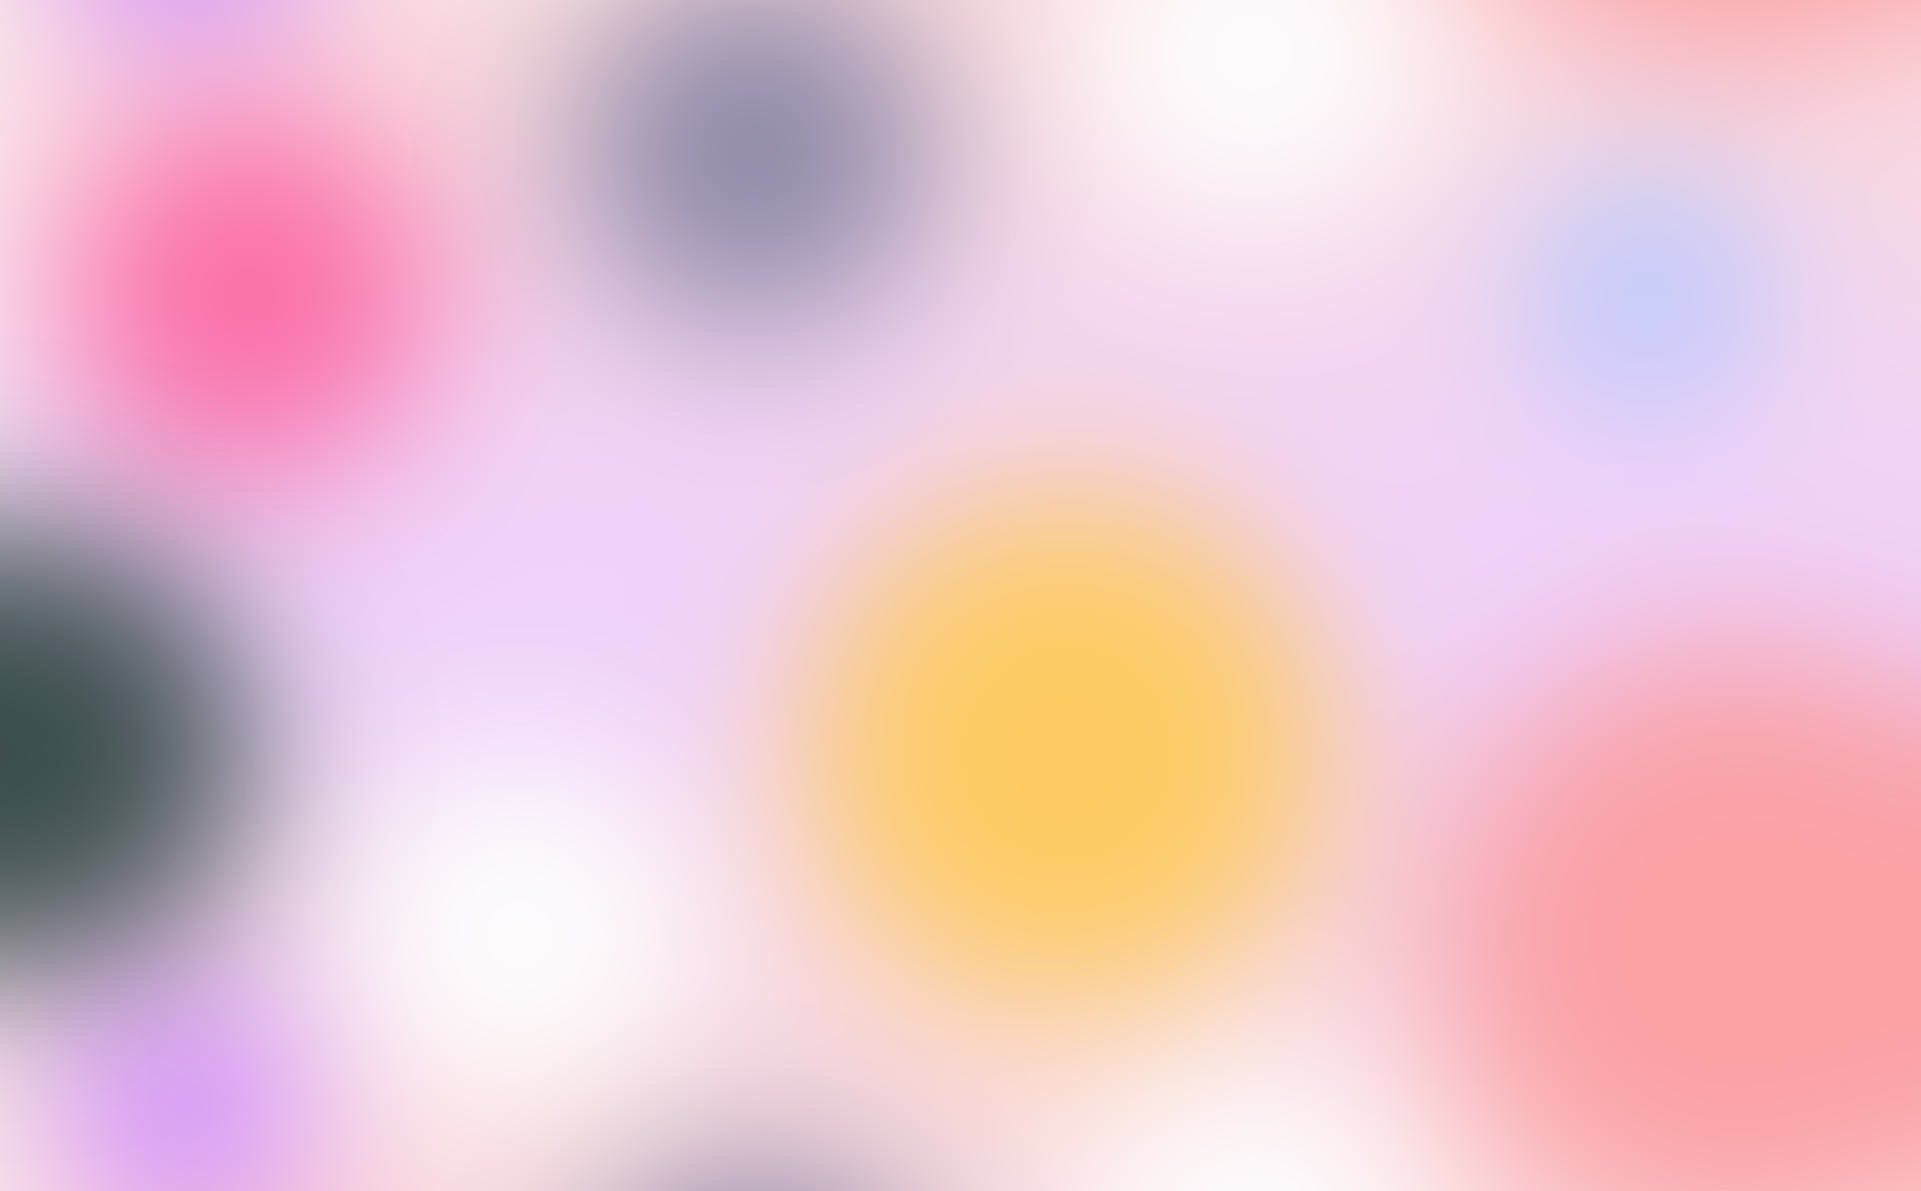 Blurred pastel colored circles